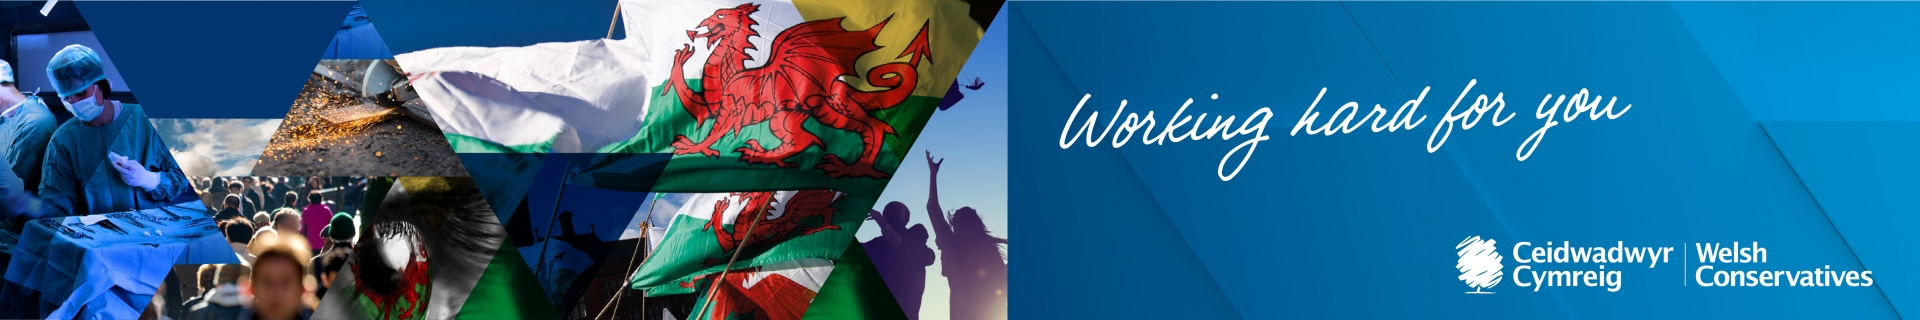 Banner image for Wrexham